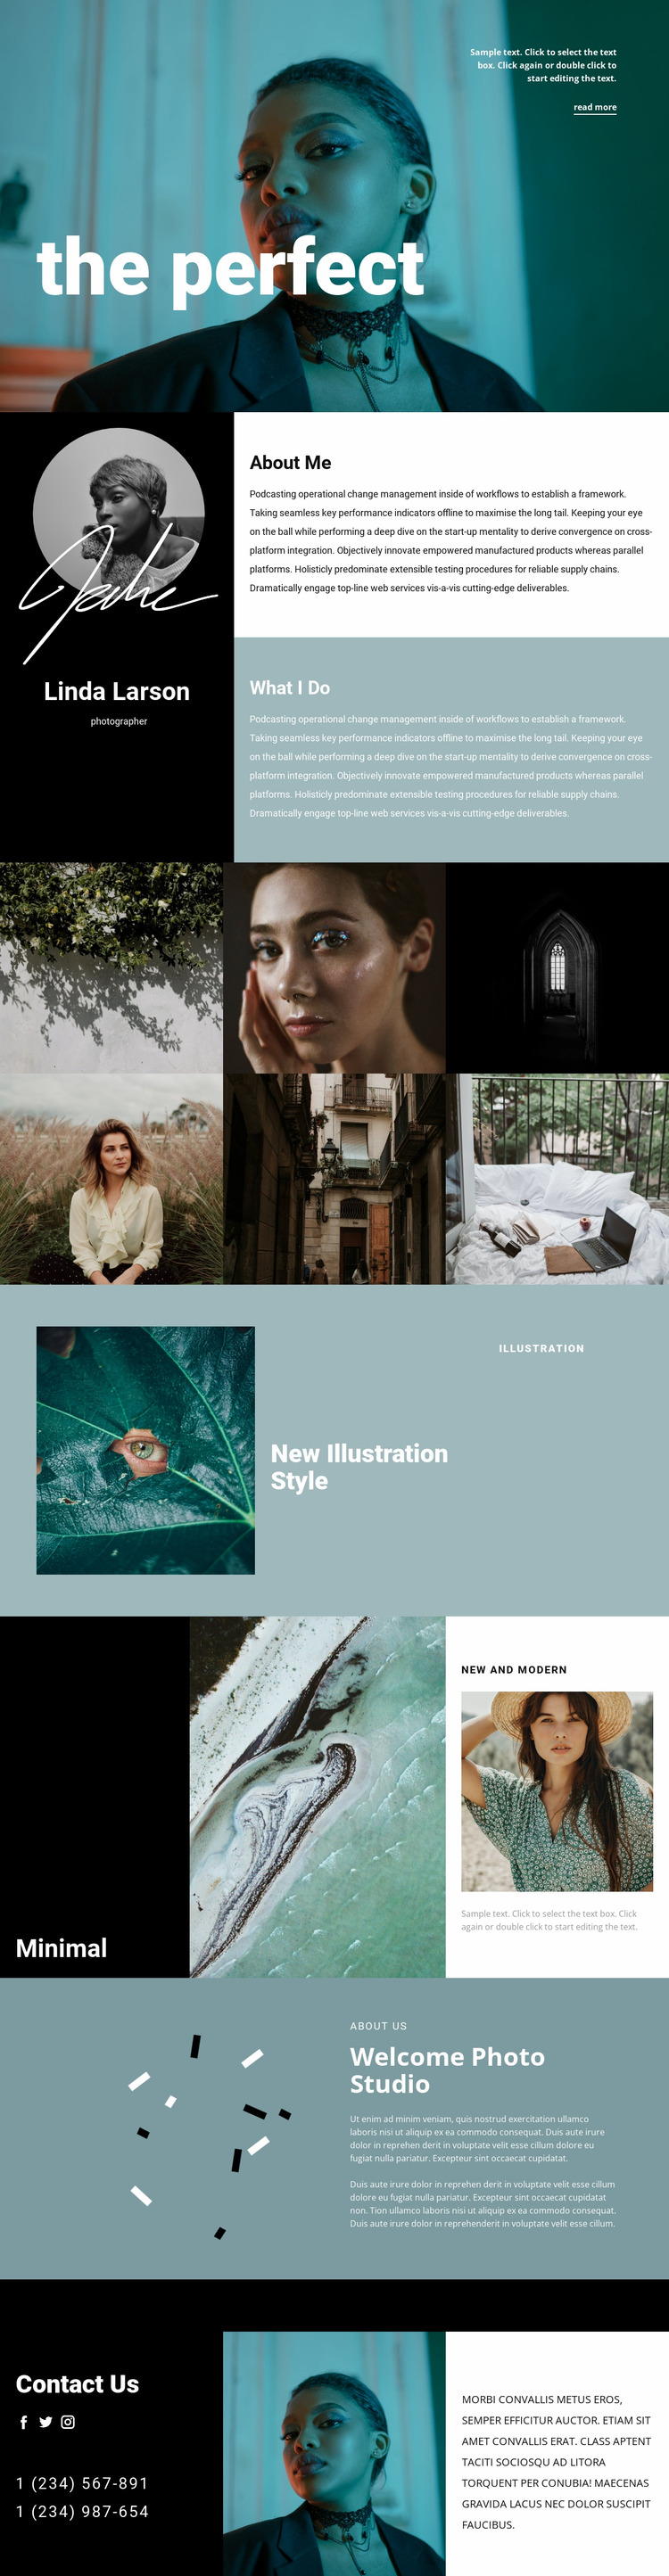 Fashion photographer resume  Html Website Builder